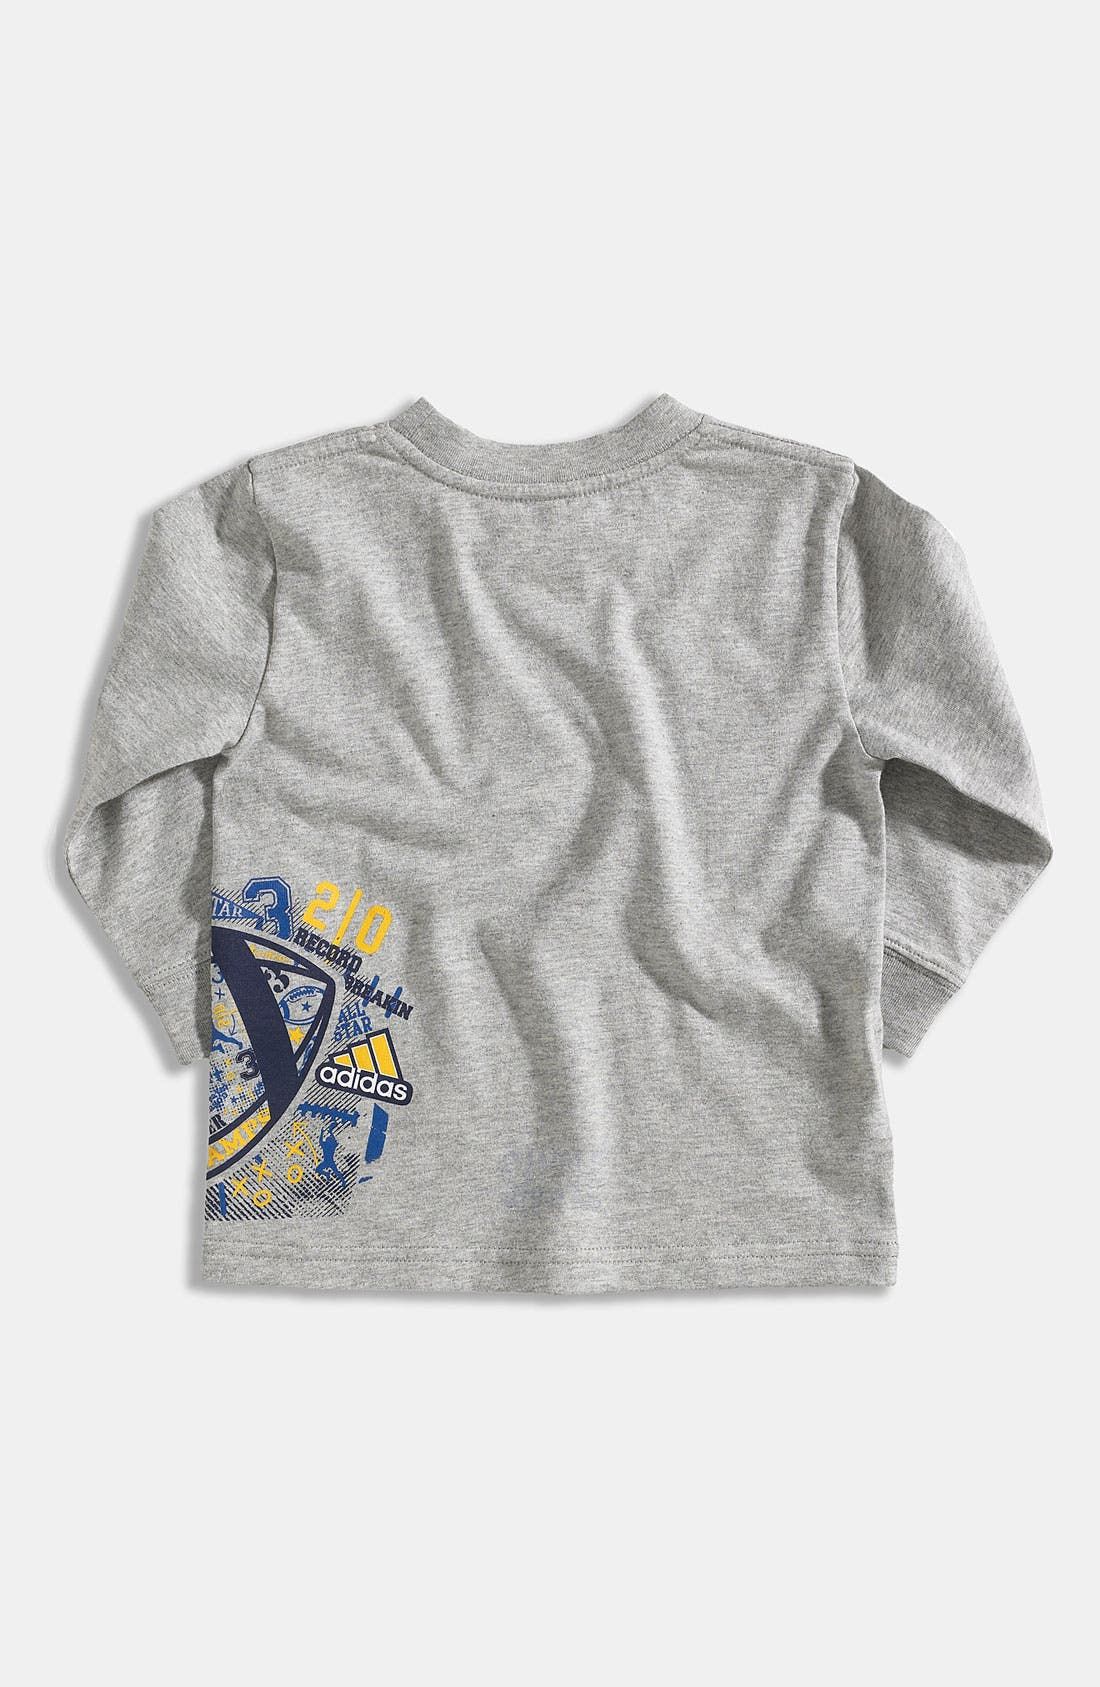 Alternate Image 2  - adidas 'Playbook Wrap' T-Shirt (Infant)